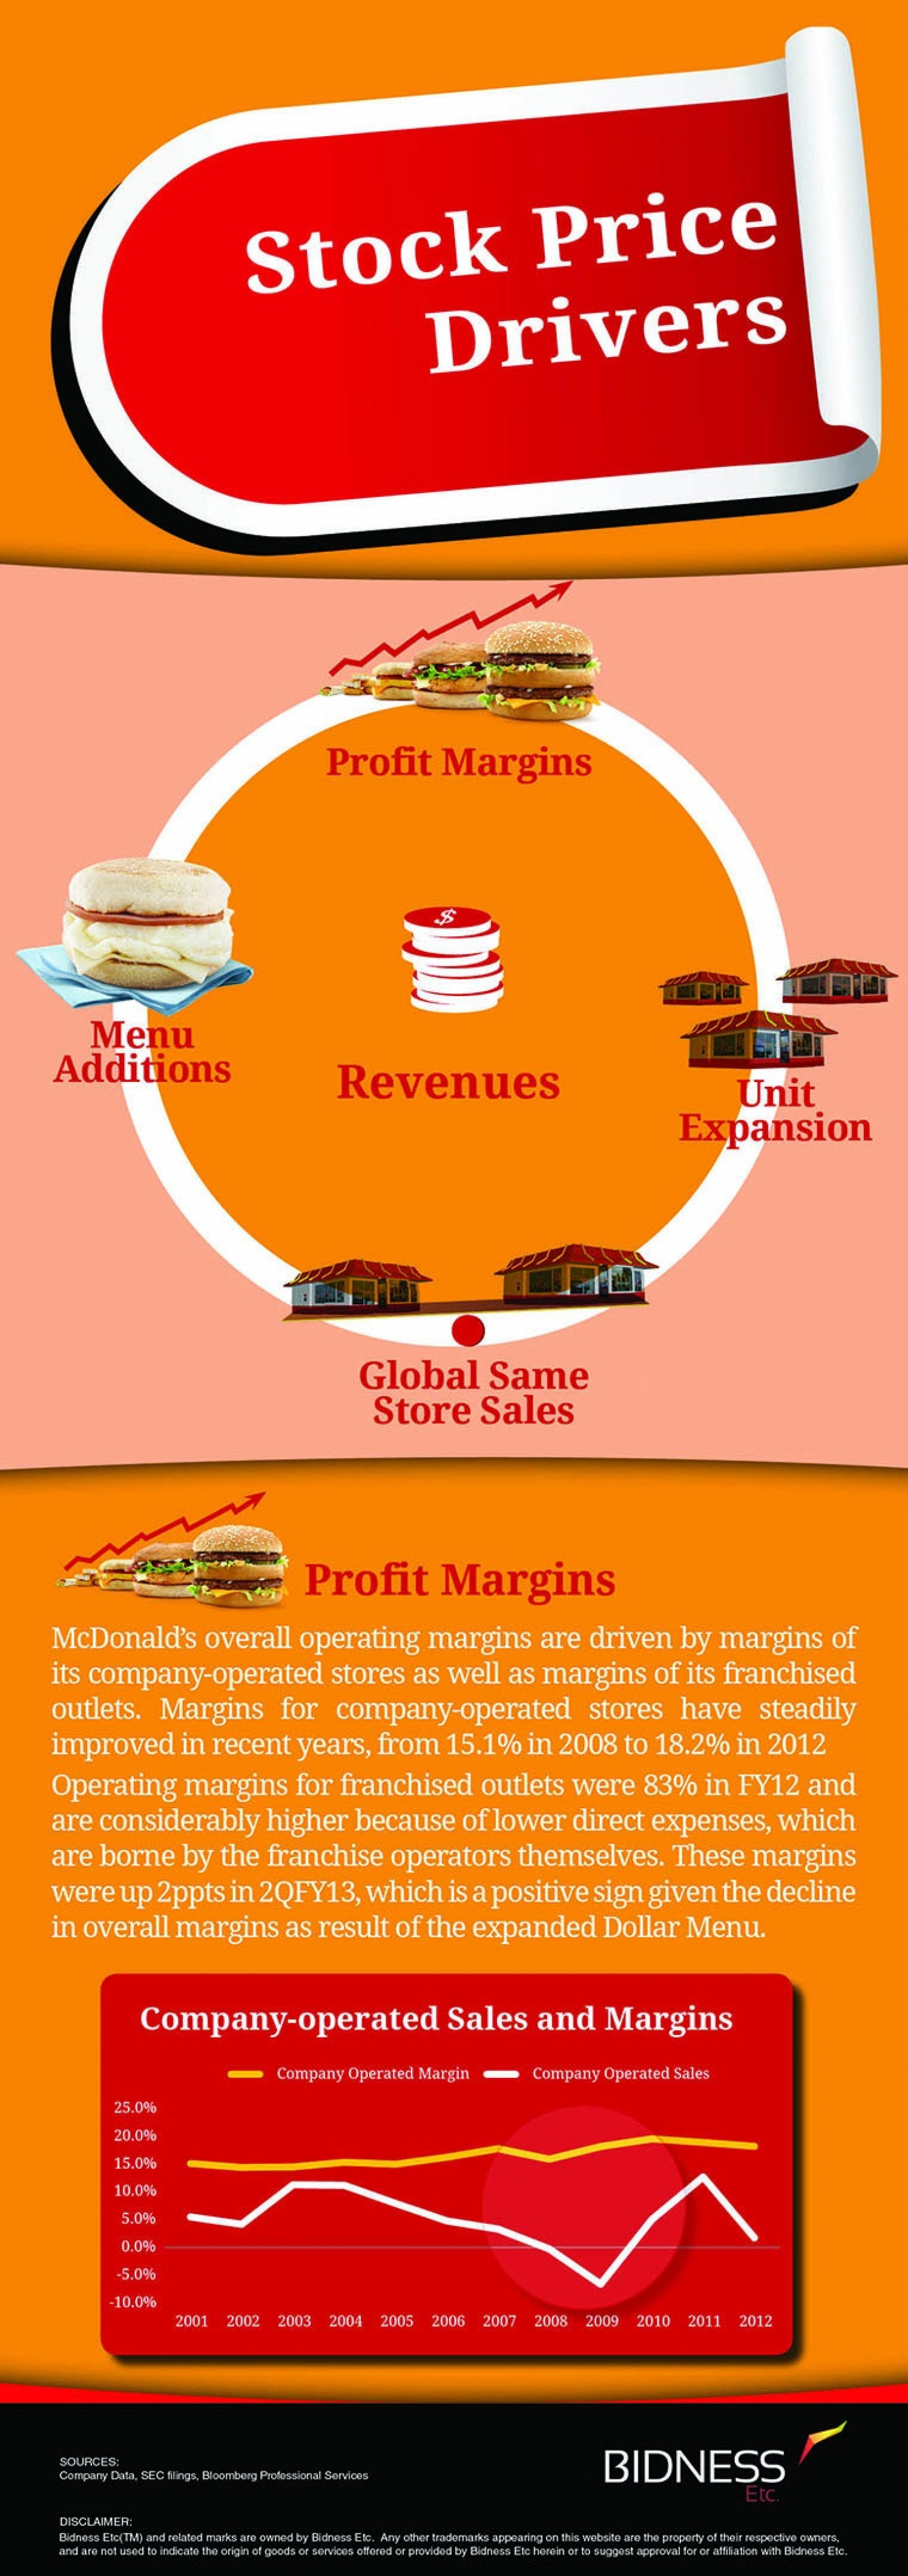 McDonald's (MCD) Stock Price Drivers Infographic